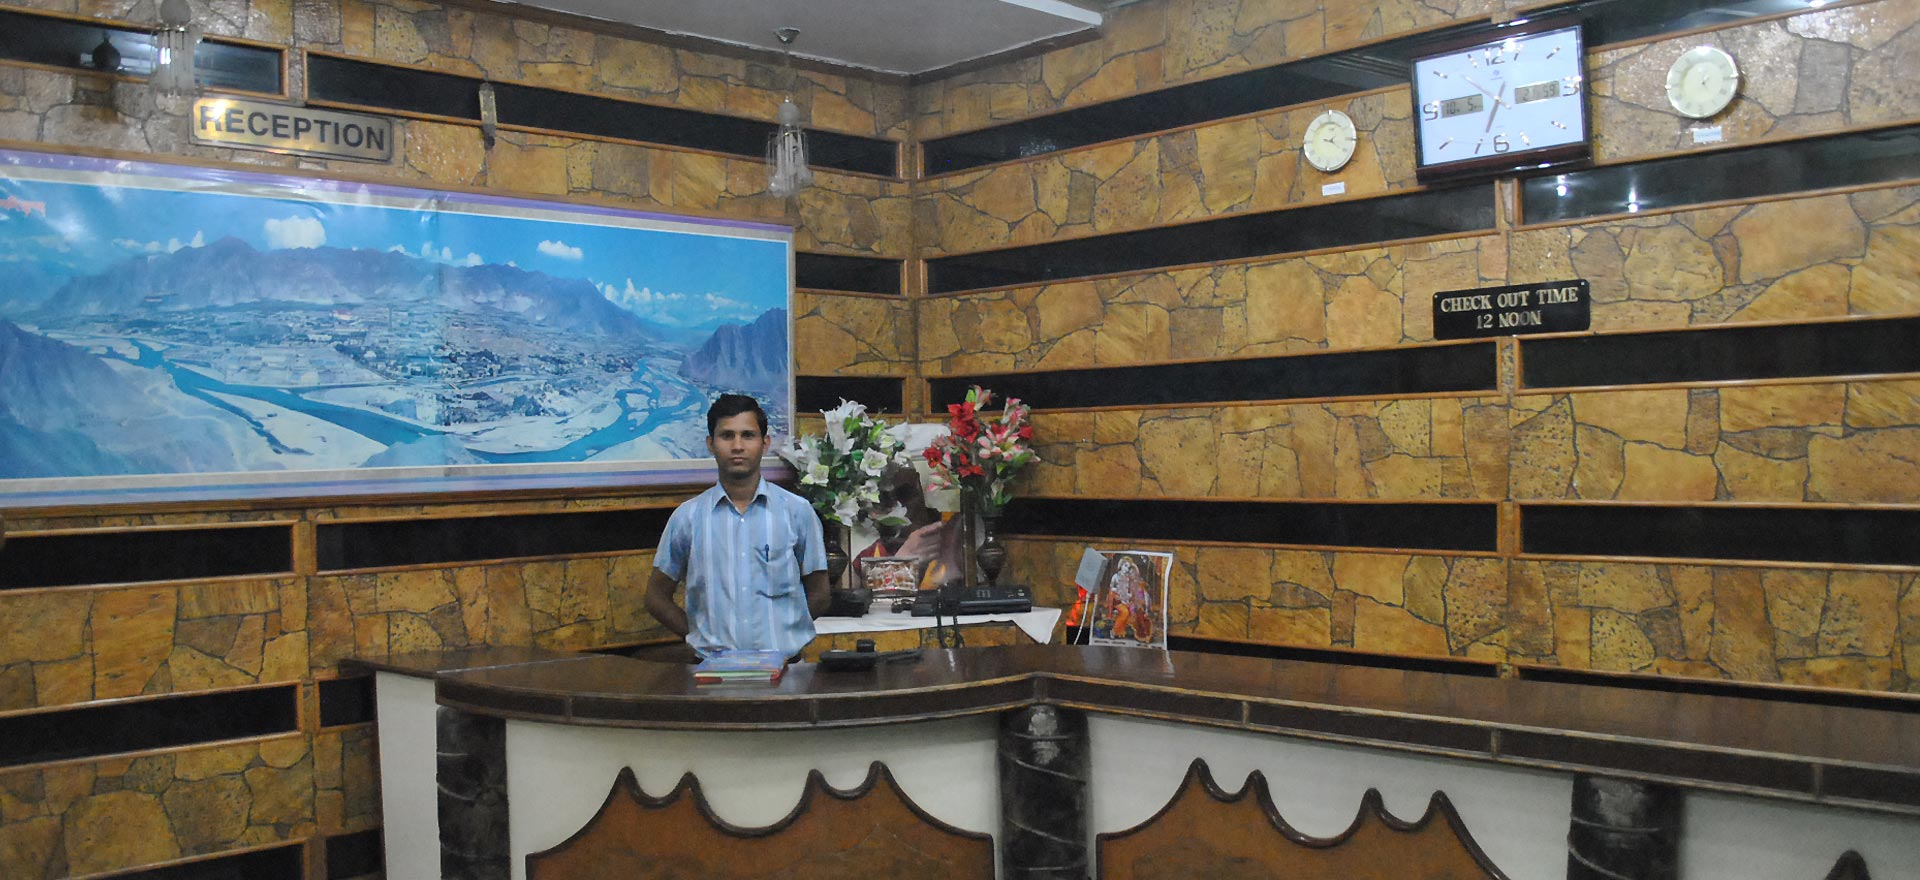 deluxe hotels with best services in mcleodganj